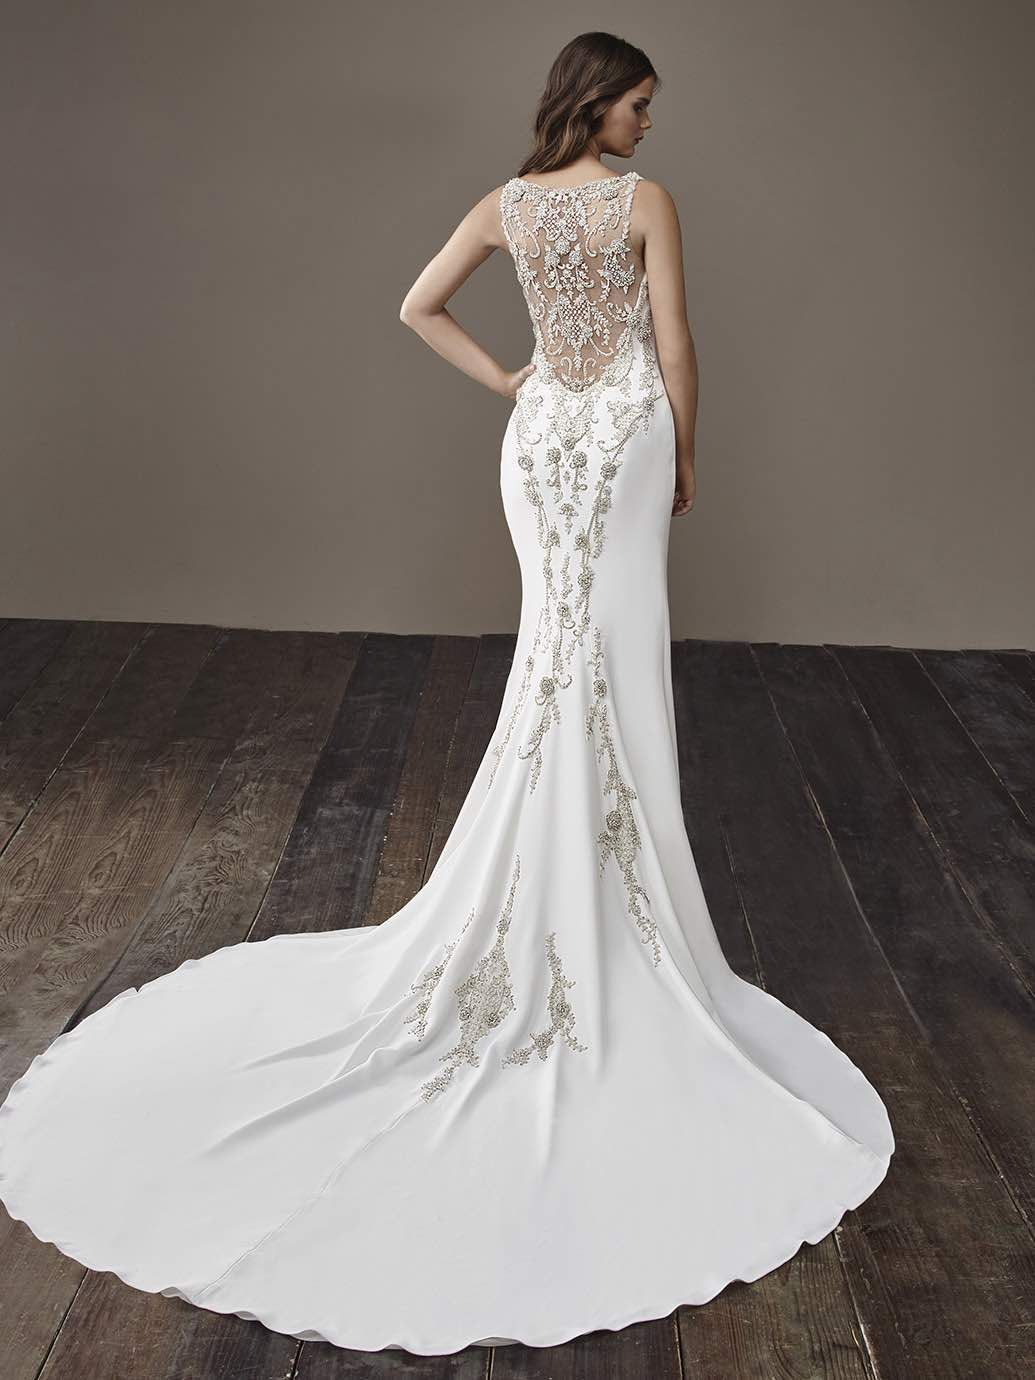 Badgley mischka wedding dress  Glamorously Modern Badgley Mischka Wedding Dresses Bride Collection